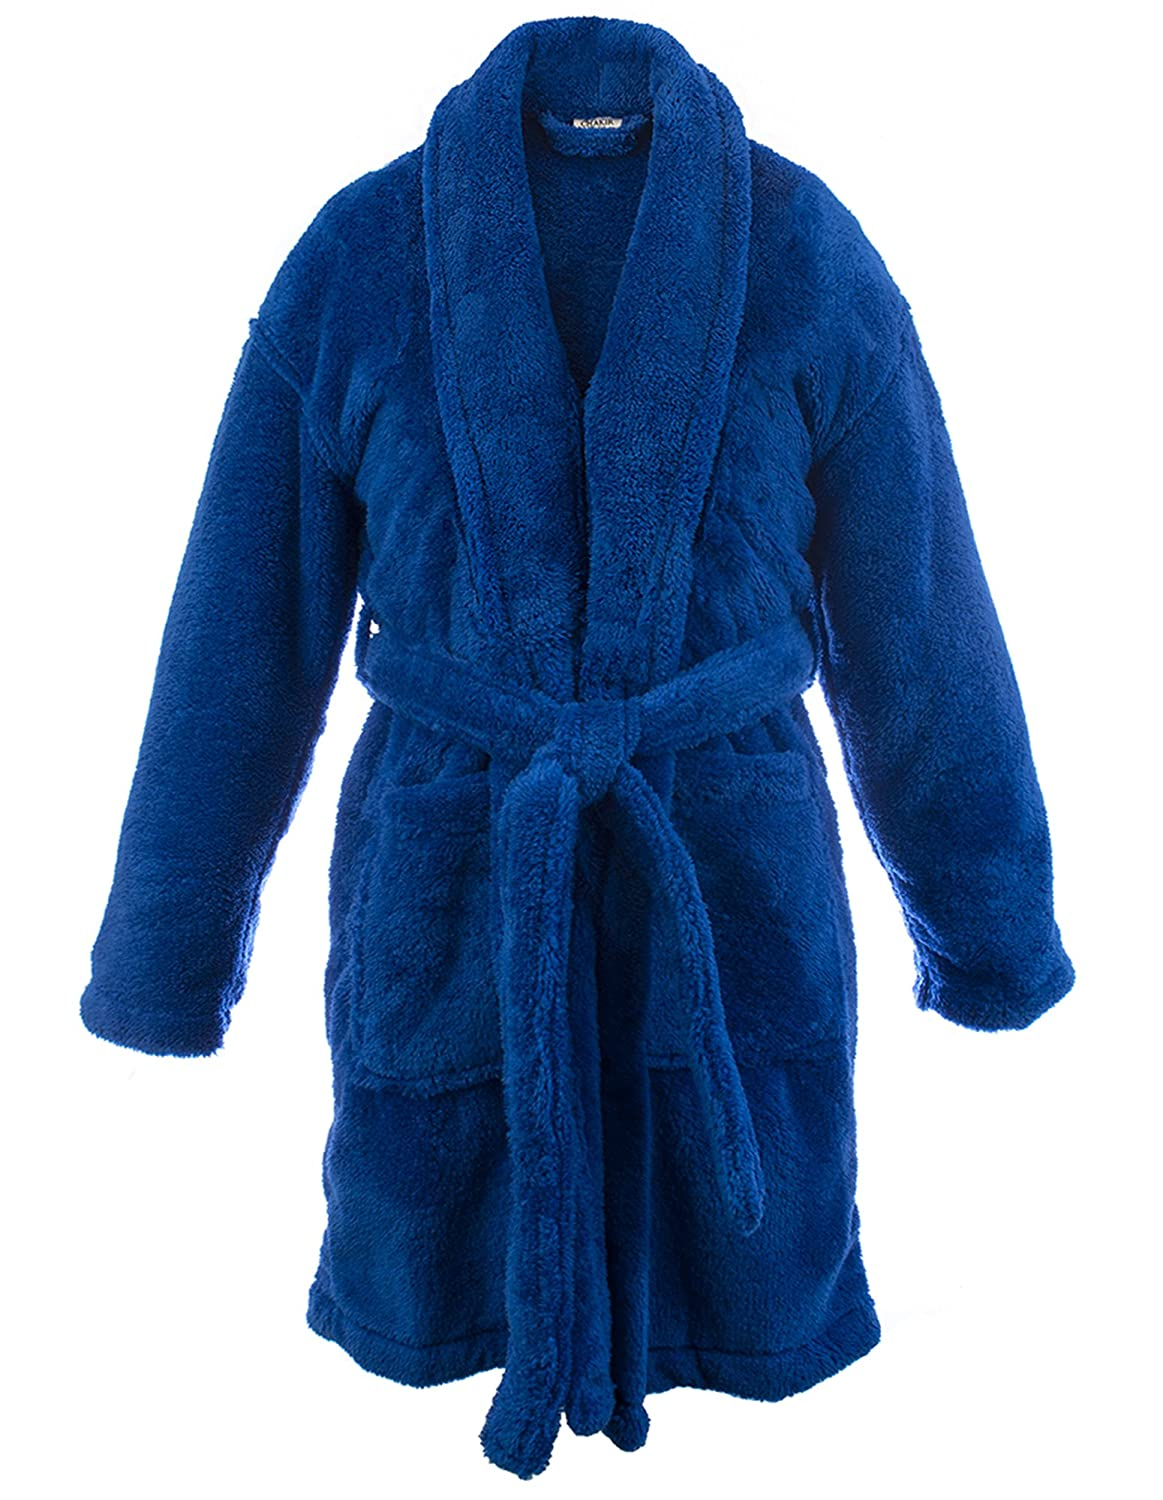 415ed4ee13 Amazon.com  BC BARE COTTON Personalized Monogram Make Your Own Custom Kids  Microfiber Fleece Shawl Robe - Boys - Royal Blue - Medium  Home   Kitchen